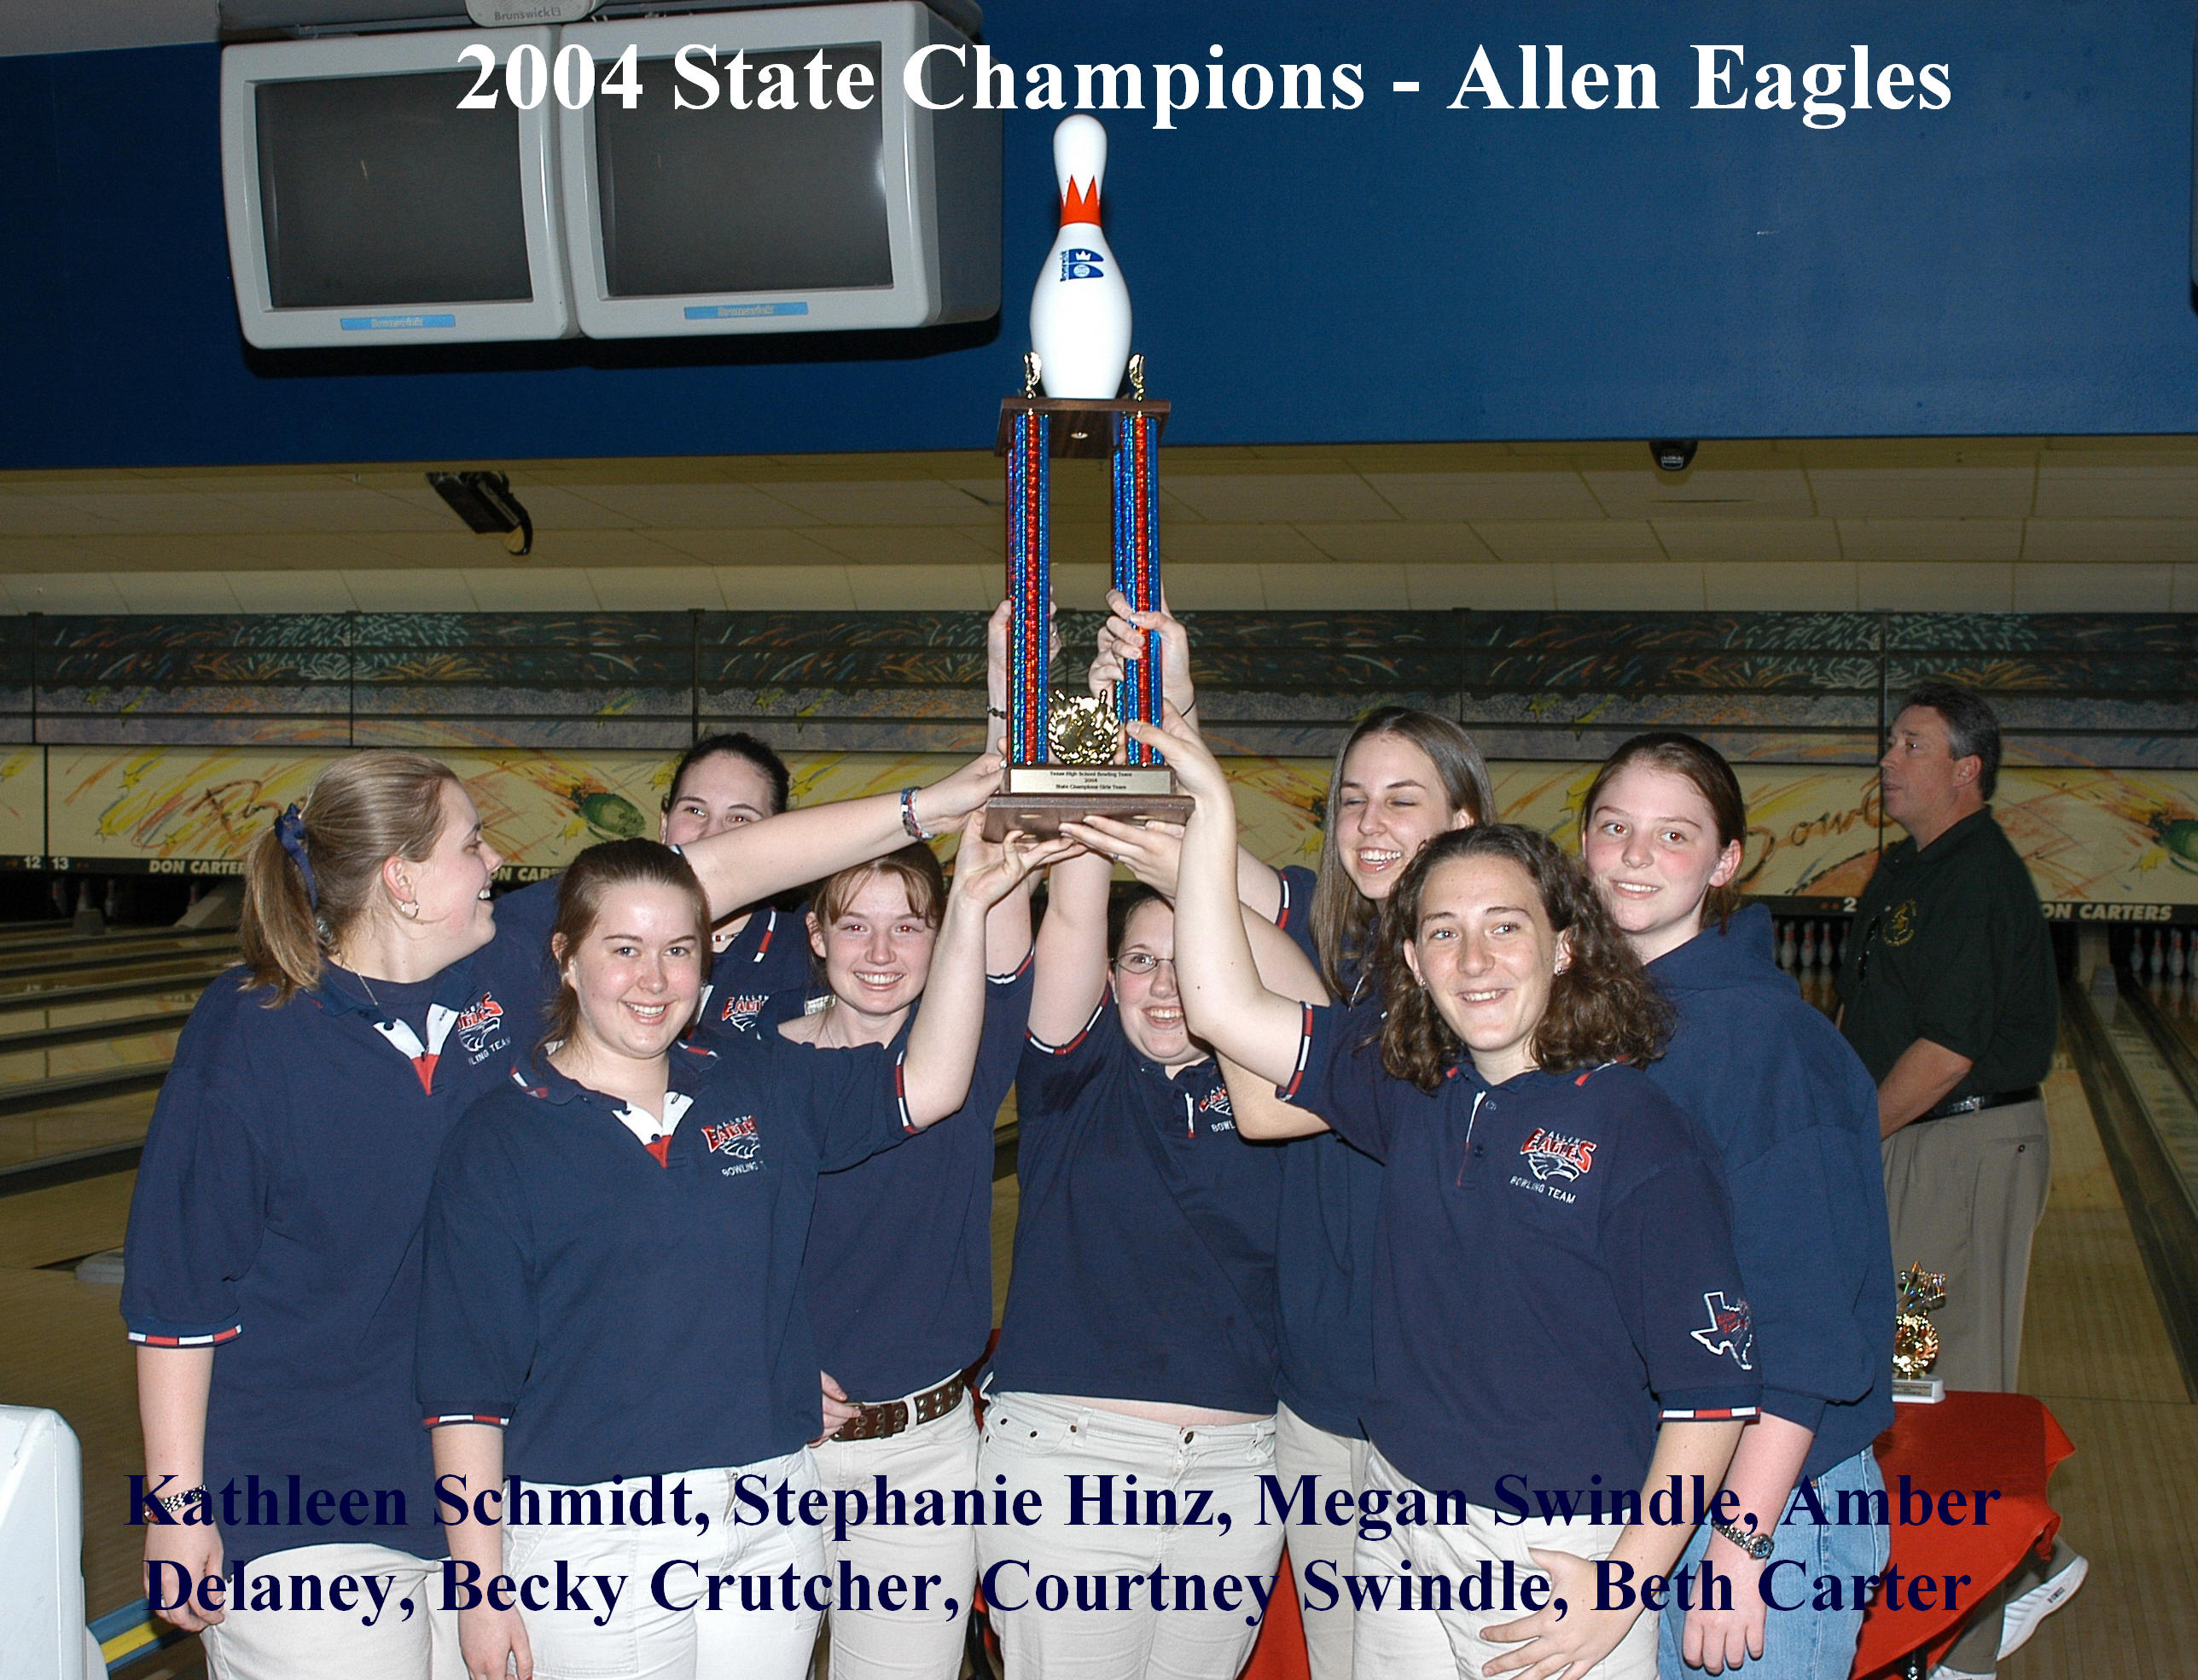 2004 Girls Team Champs